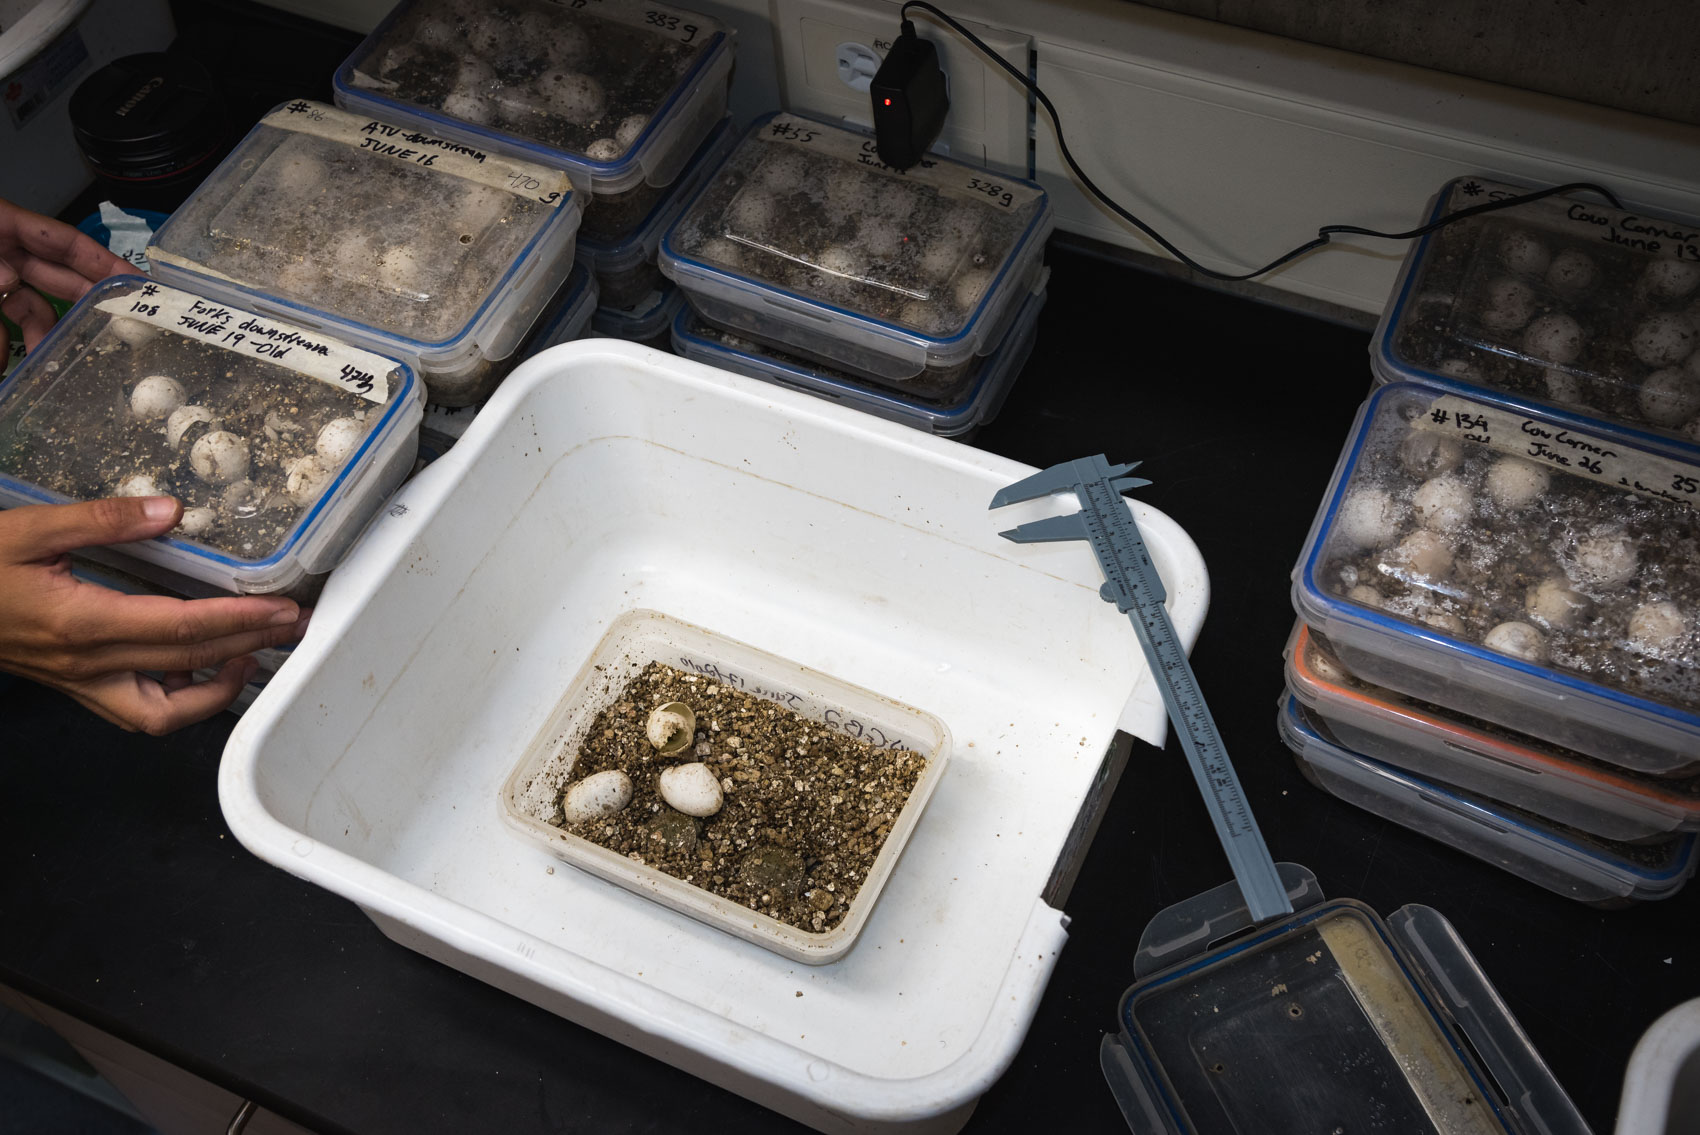 Hatching and measuring juvenile spiny soft shell turtles at a restoration lab  © David Coulson Canadian conservation photojournalist